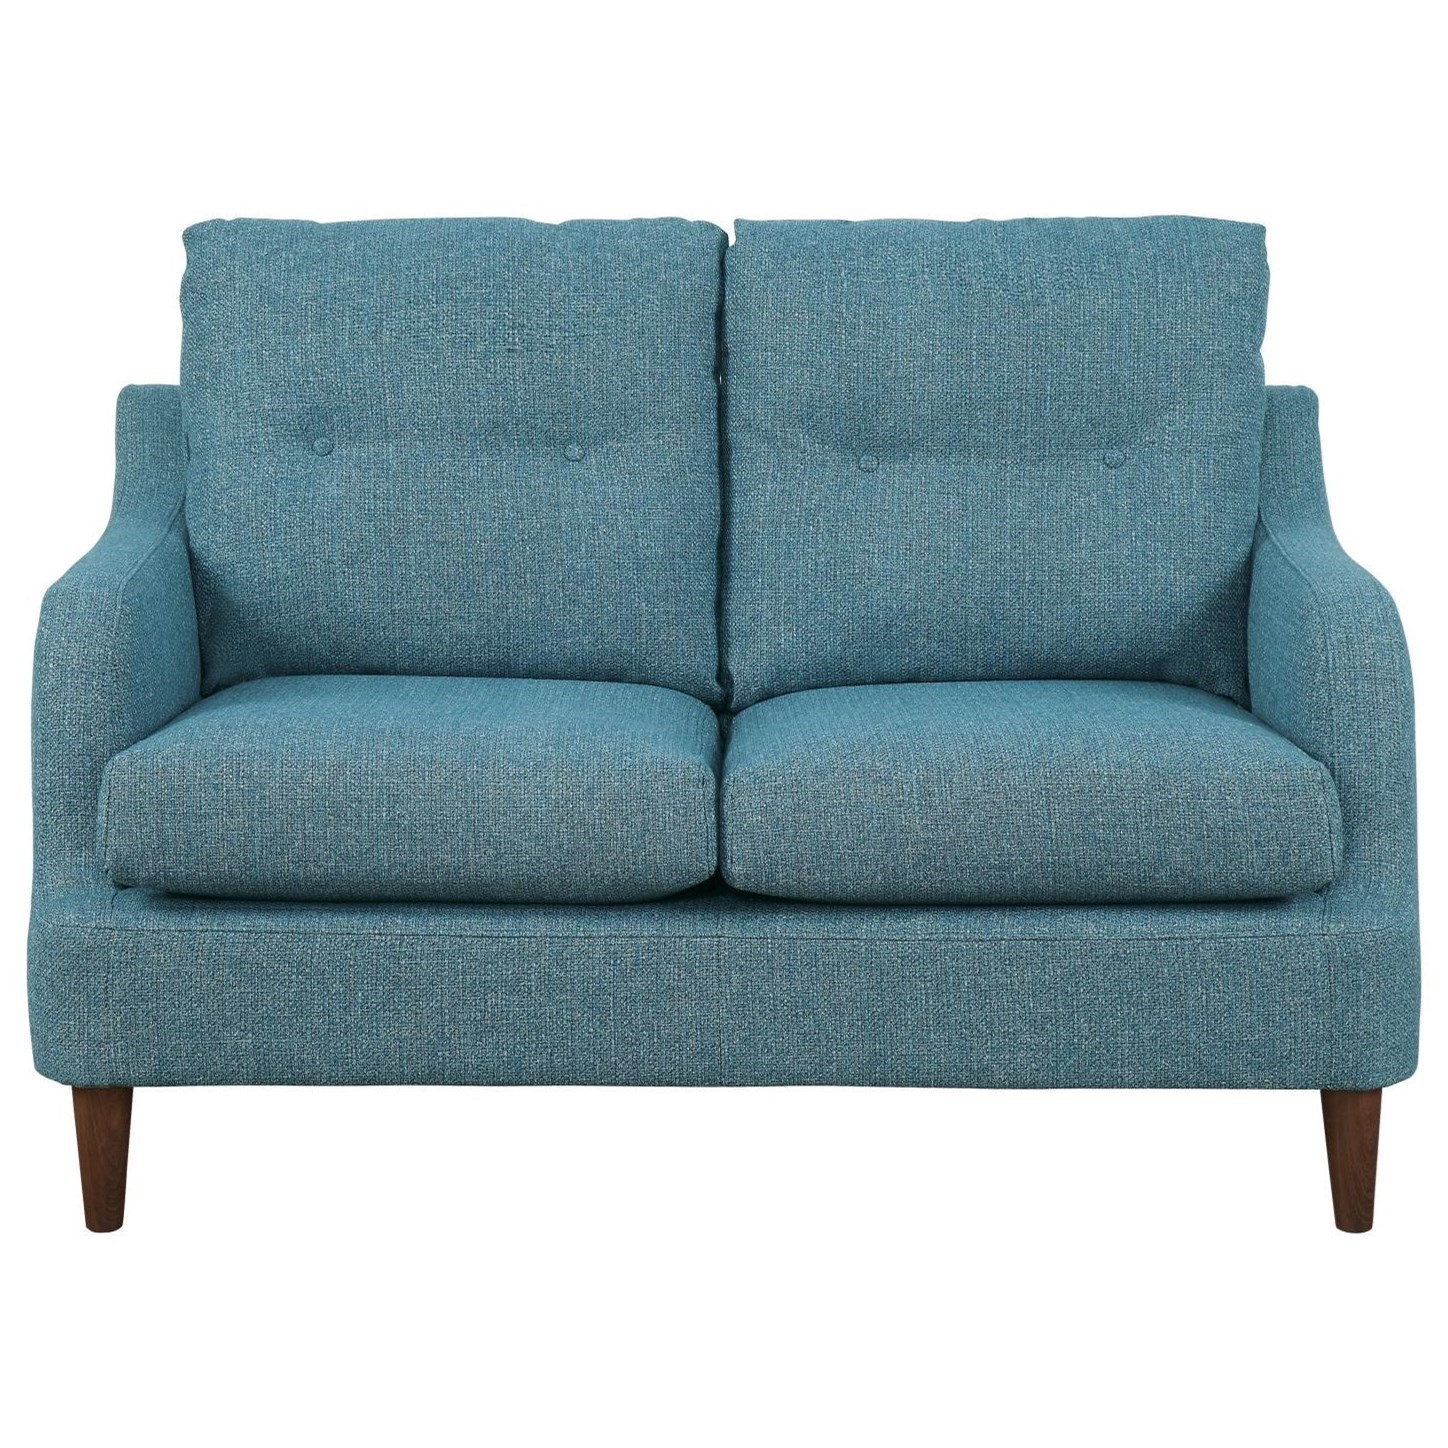 Cagle Love Seat by Homelegance at Rooms for Less